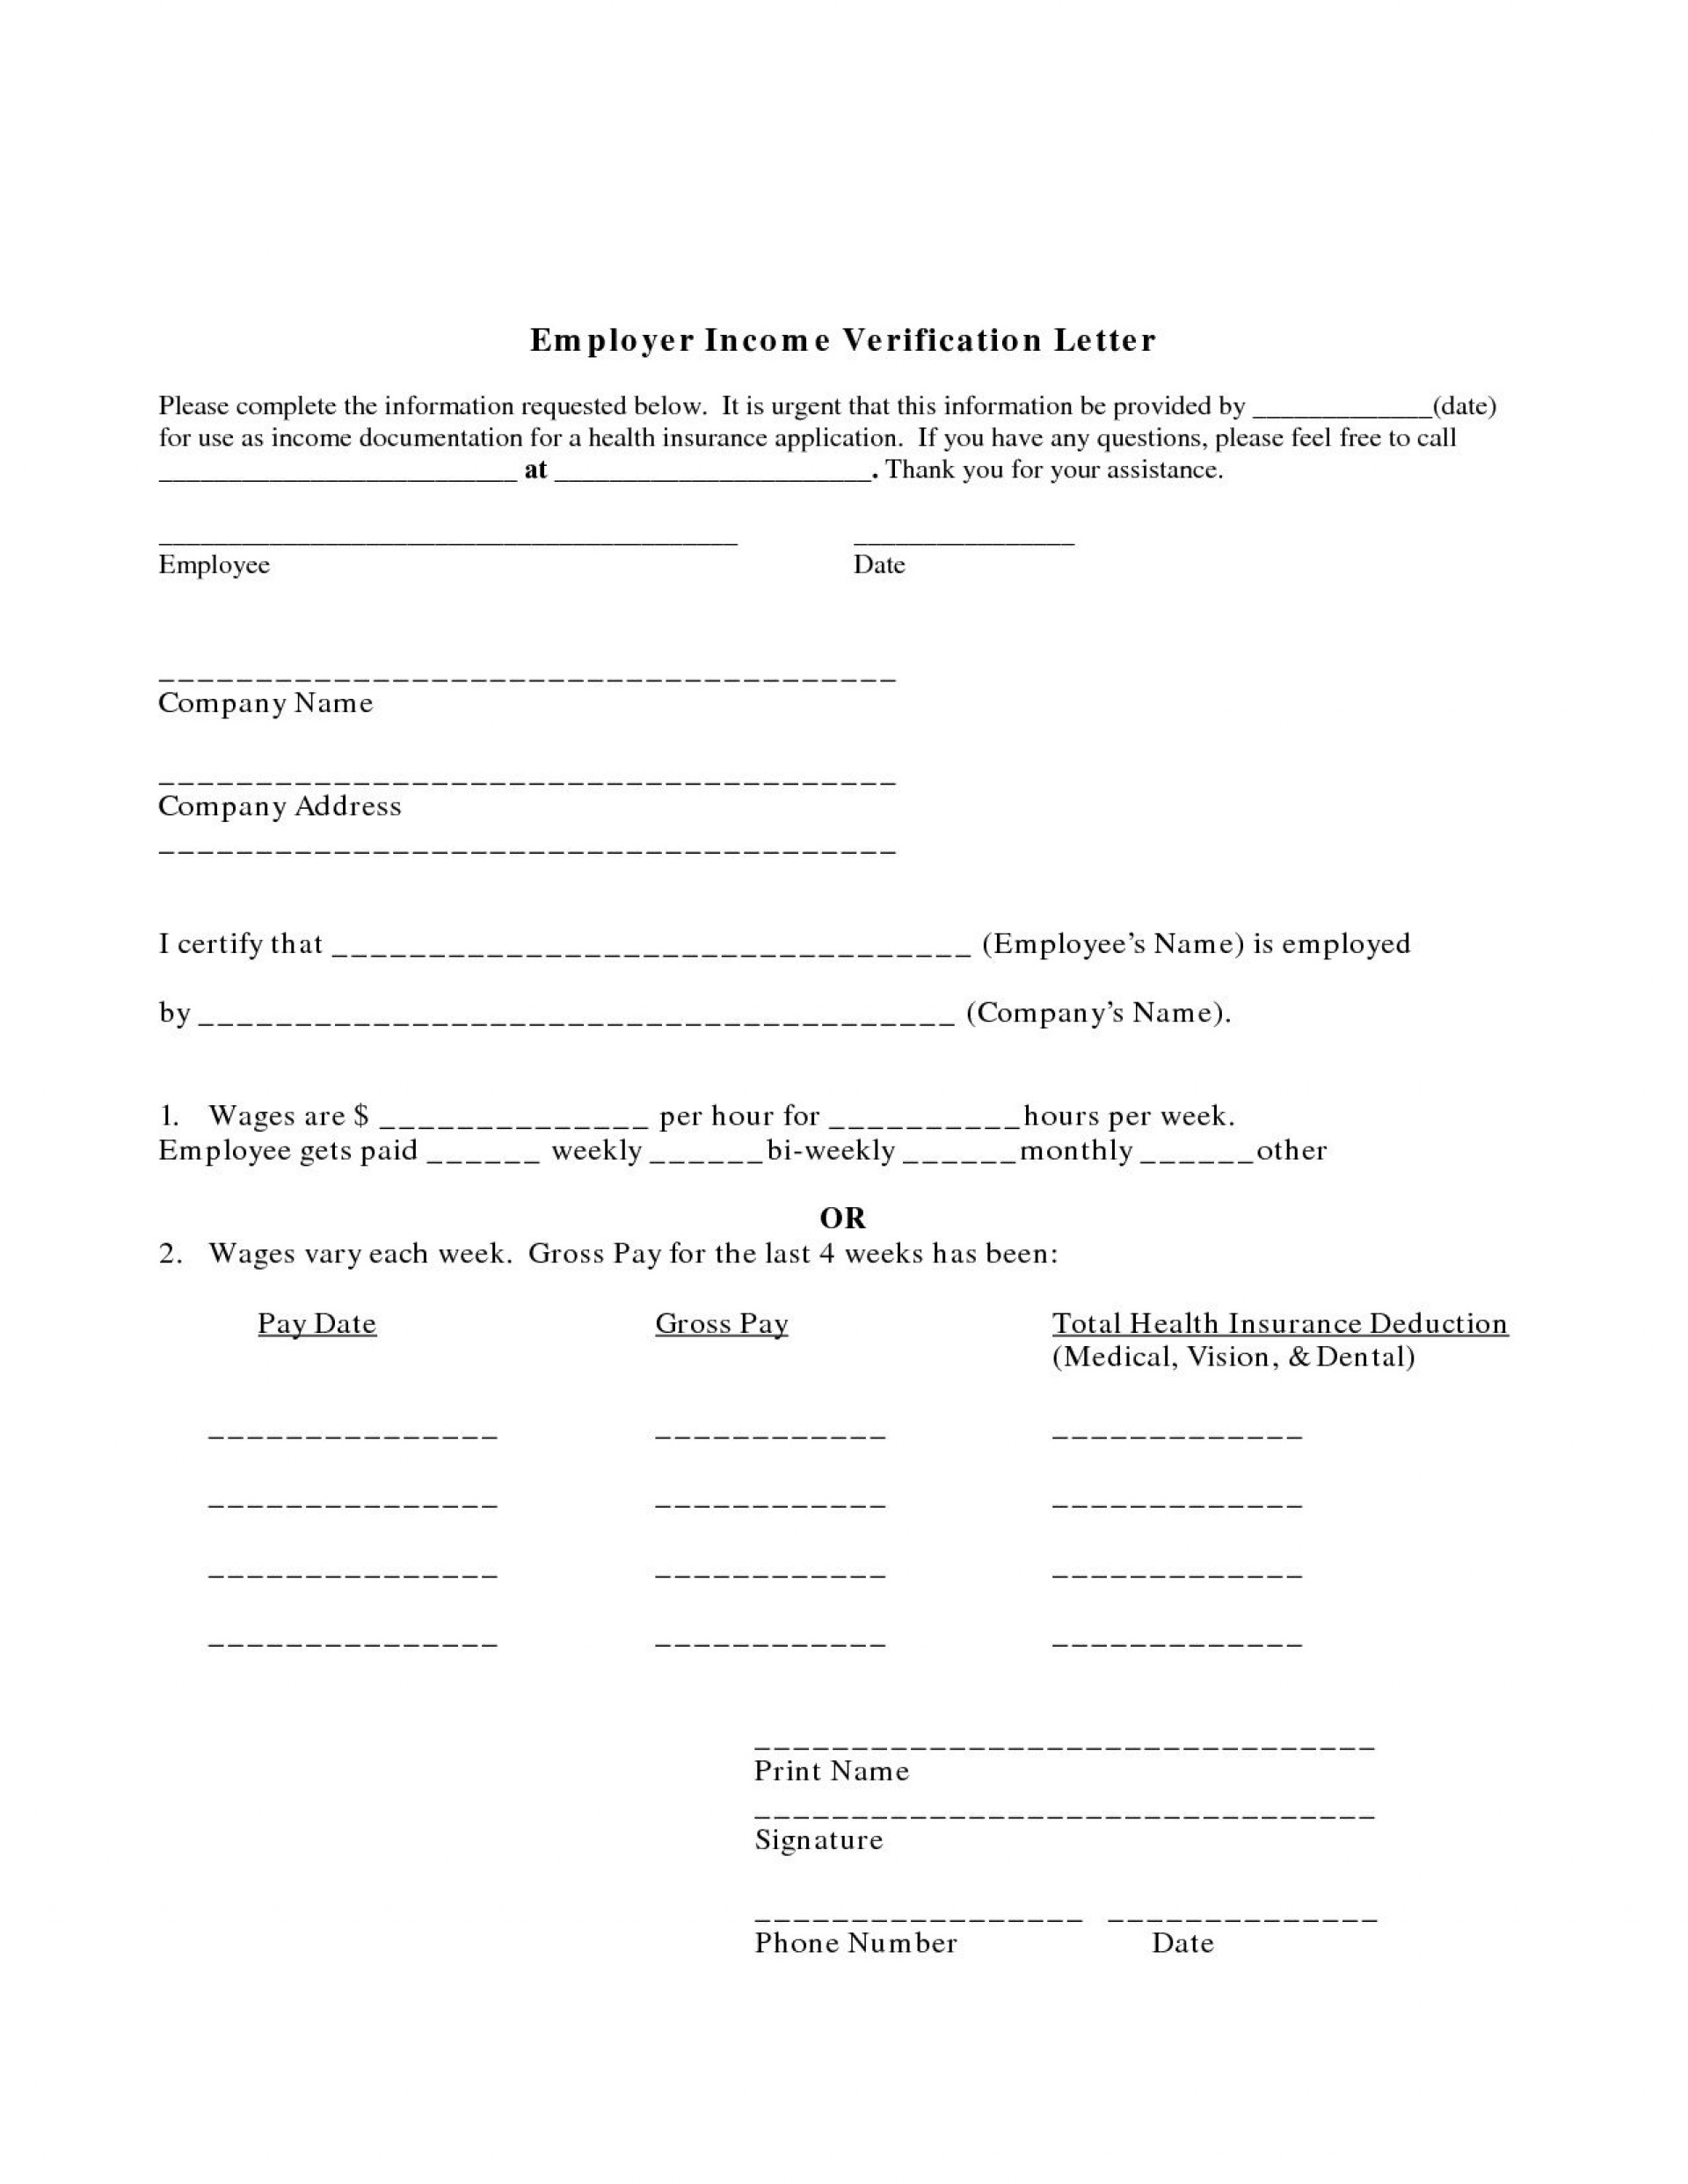 001 Imposing Income Verification Letter Template Example  Word From Employer Proof Of1920